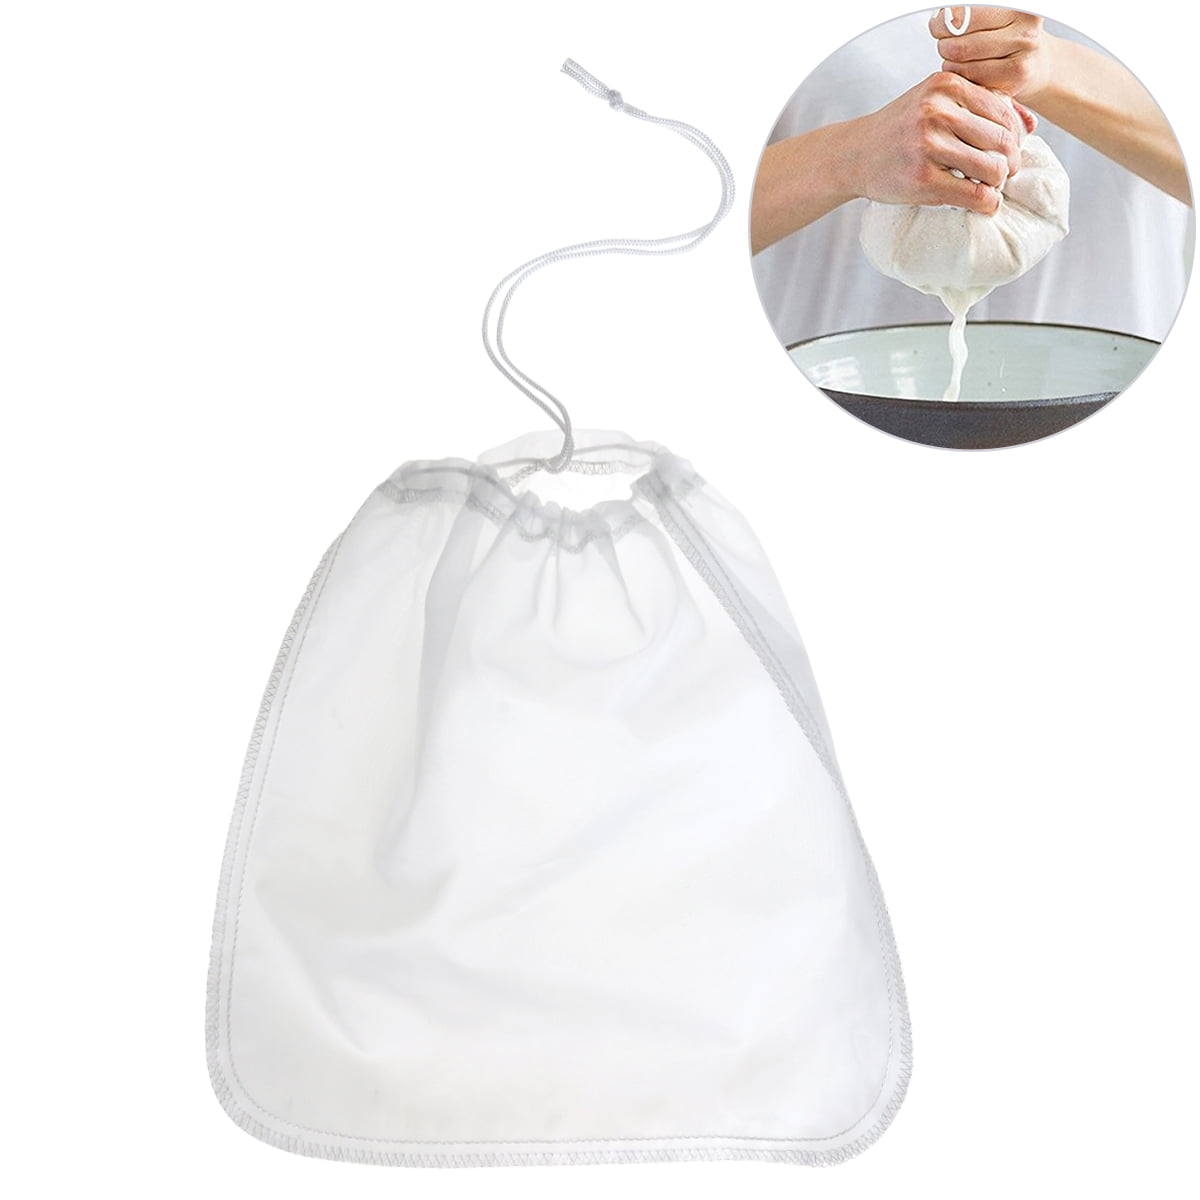 Click here to buy BESTOMZ 200μm Nut Milk Bag Reusable Almond Milk Bags Commercial Food Grade Fine Nylon Mesh Food Strainer & Cheese Maker Coffee & Tea Filter.